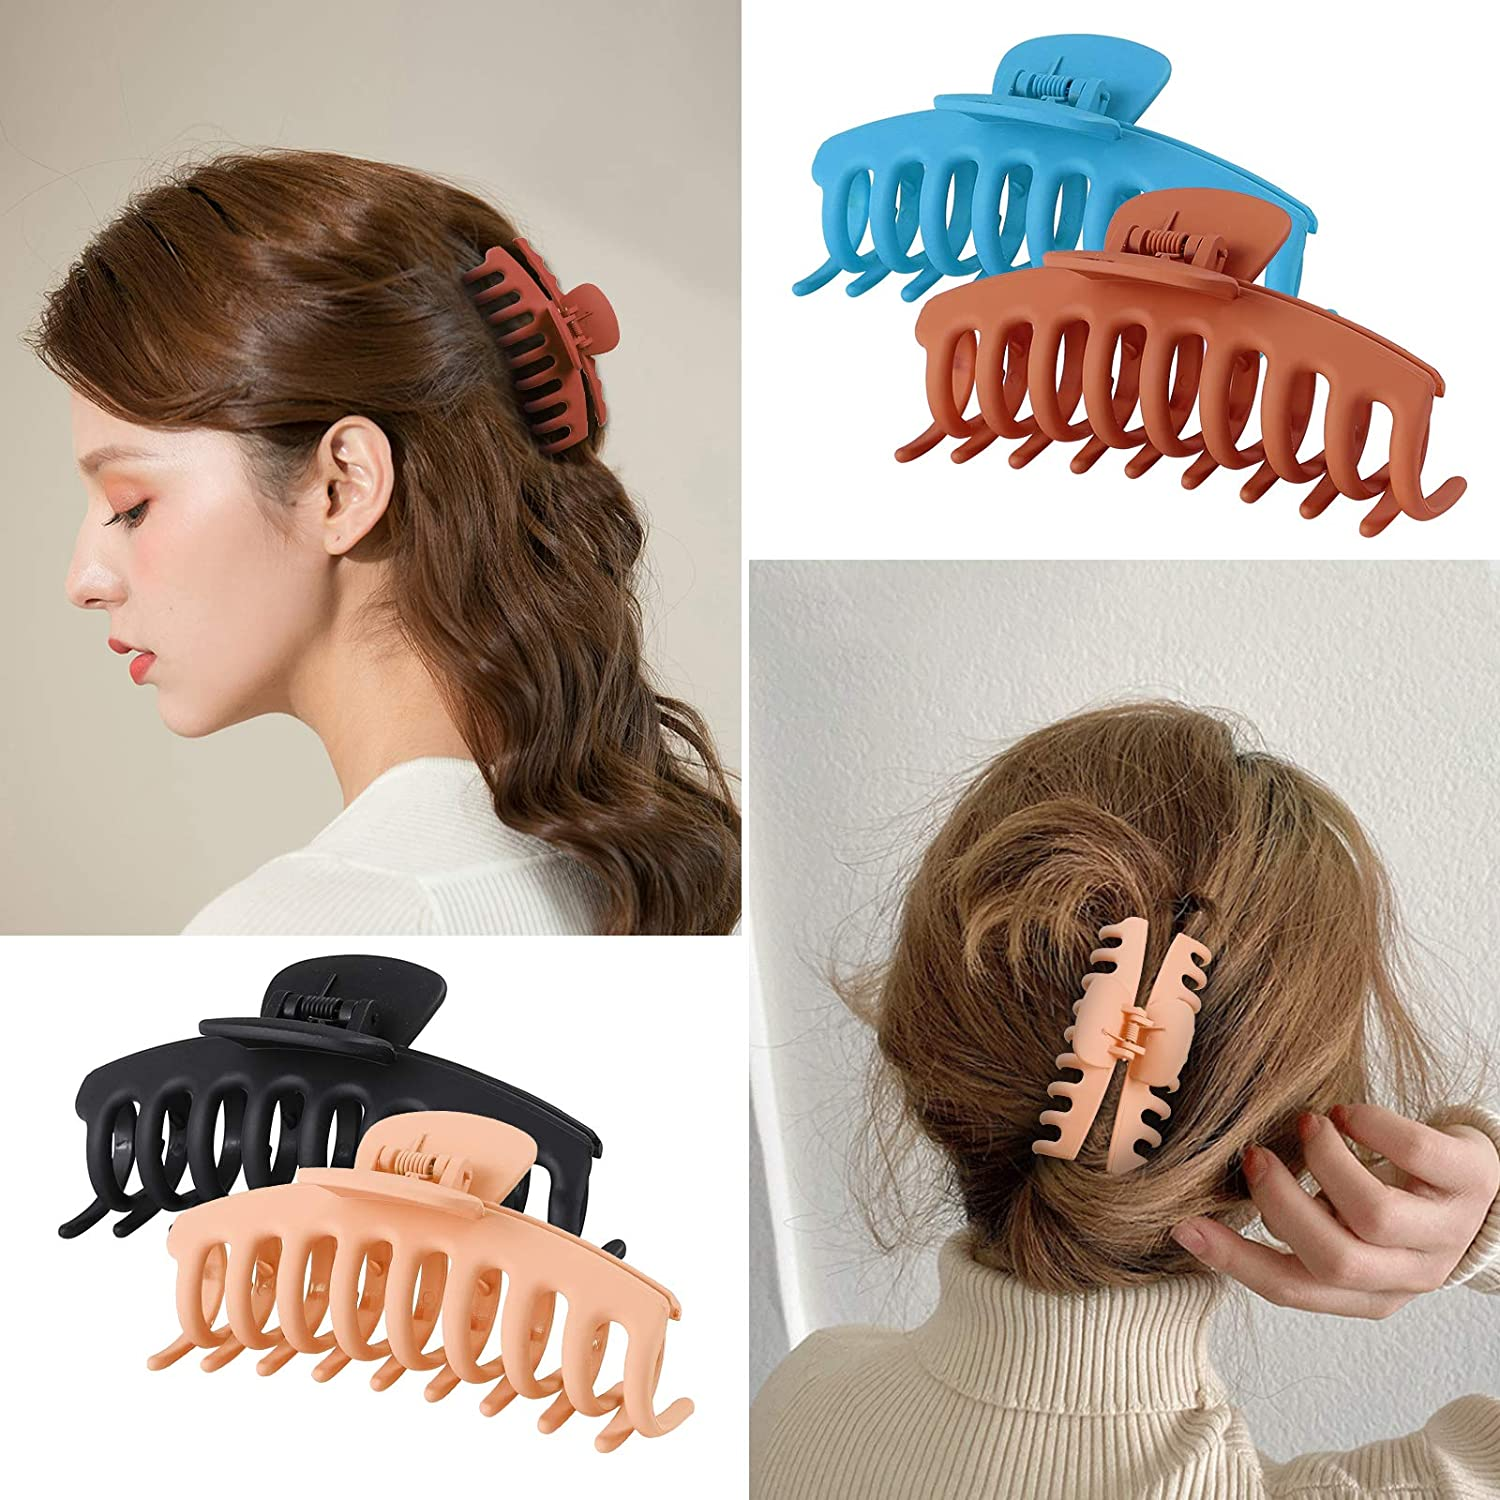 Tyfthui 6 Pcs Hair Claw Clips for Women Nonslip Hair Clips for Women and Girls, Strong Hold for Thin/Thick Hair Fashion Hair Styling Accessories (Multi-colored B) : Beauty